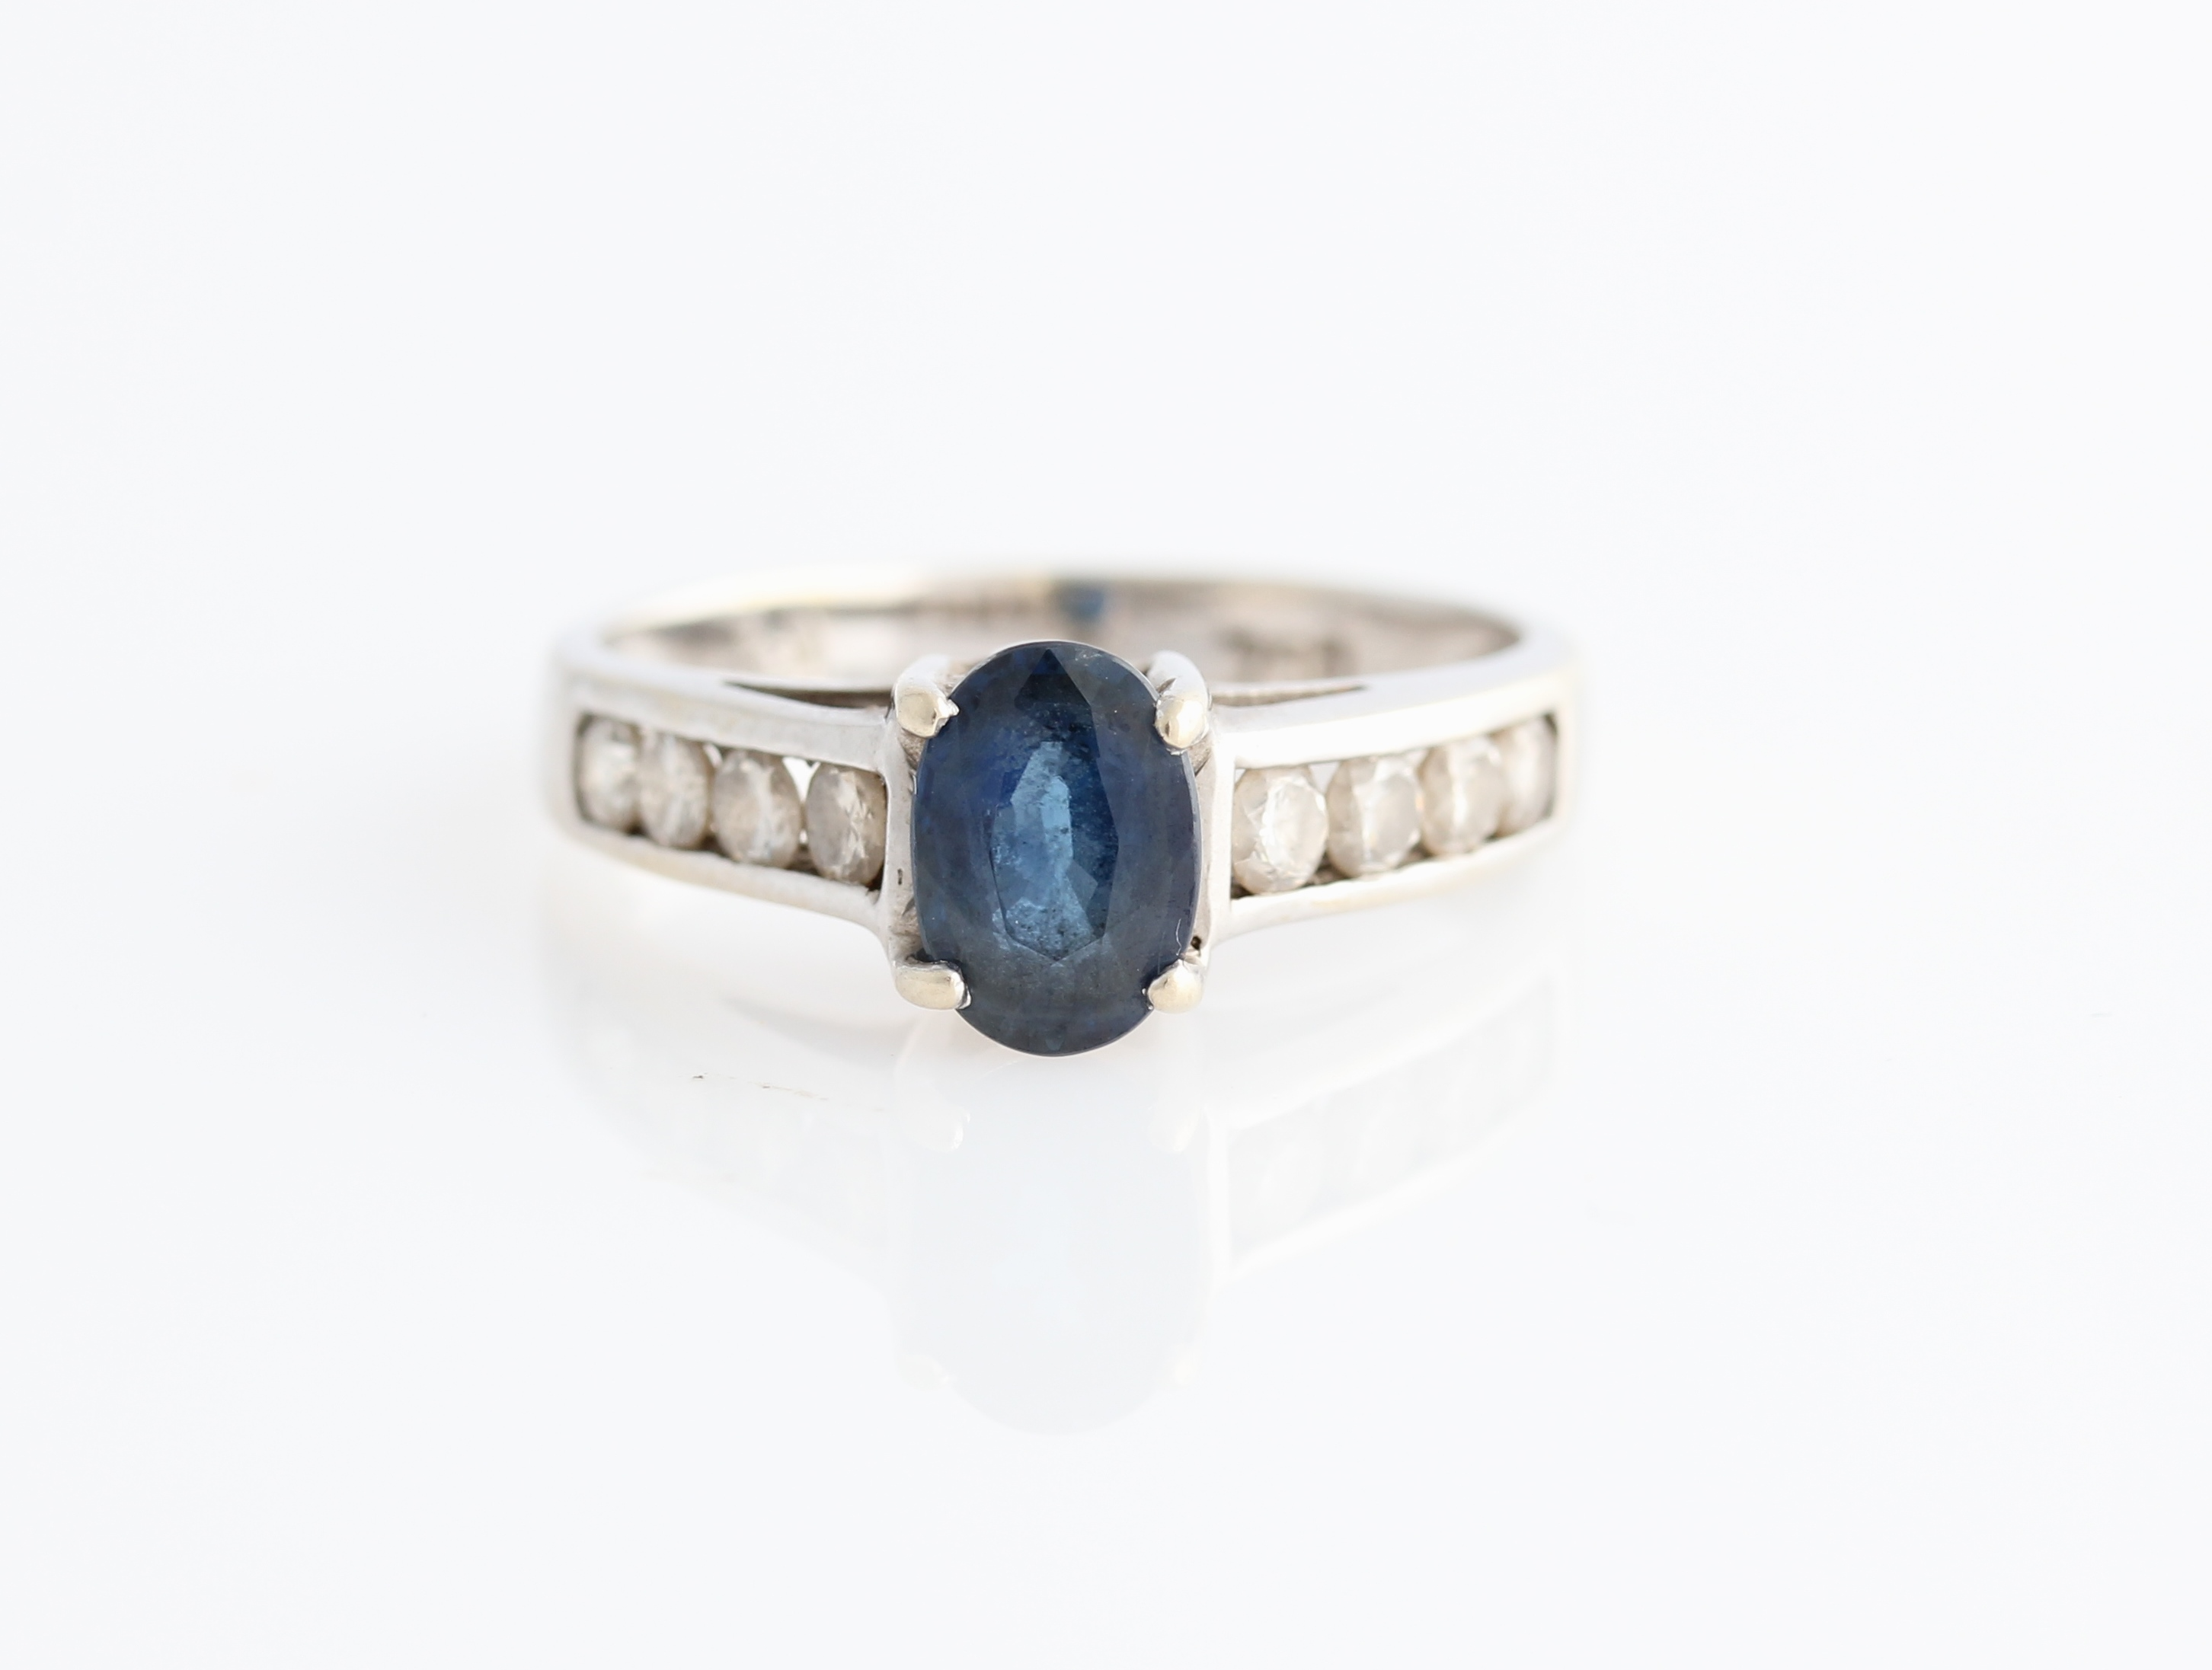 Lot 57 - A sapphire and diamond ring, set with an oval cut sapphire, measuring approx. 7x5mm, with each